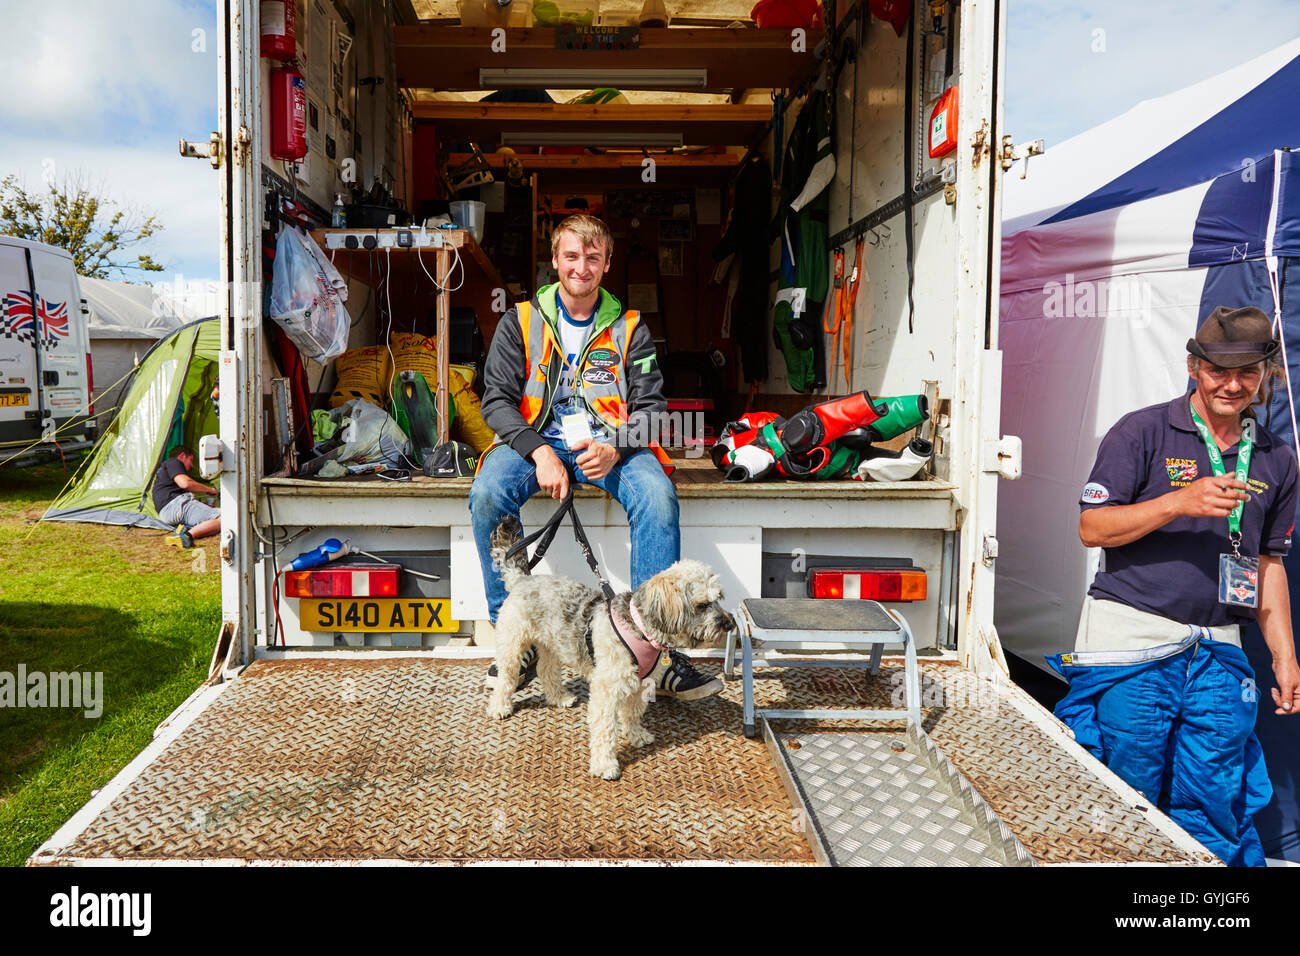 MGP truck with dog - Stock Image